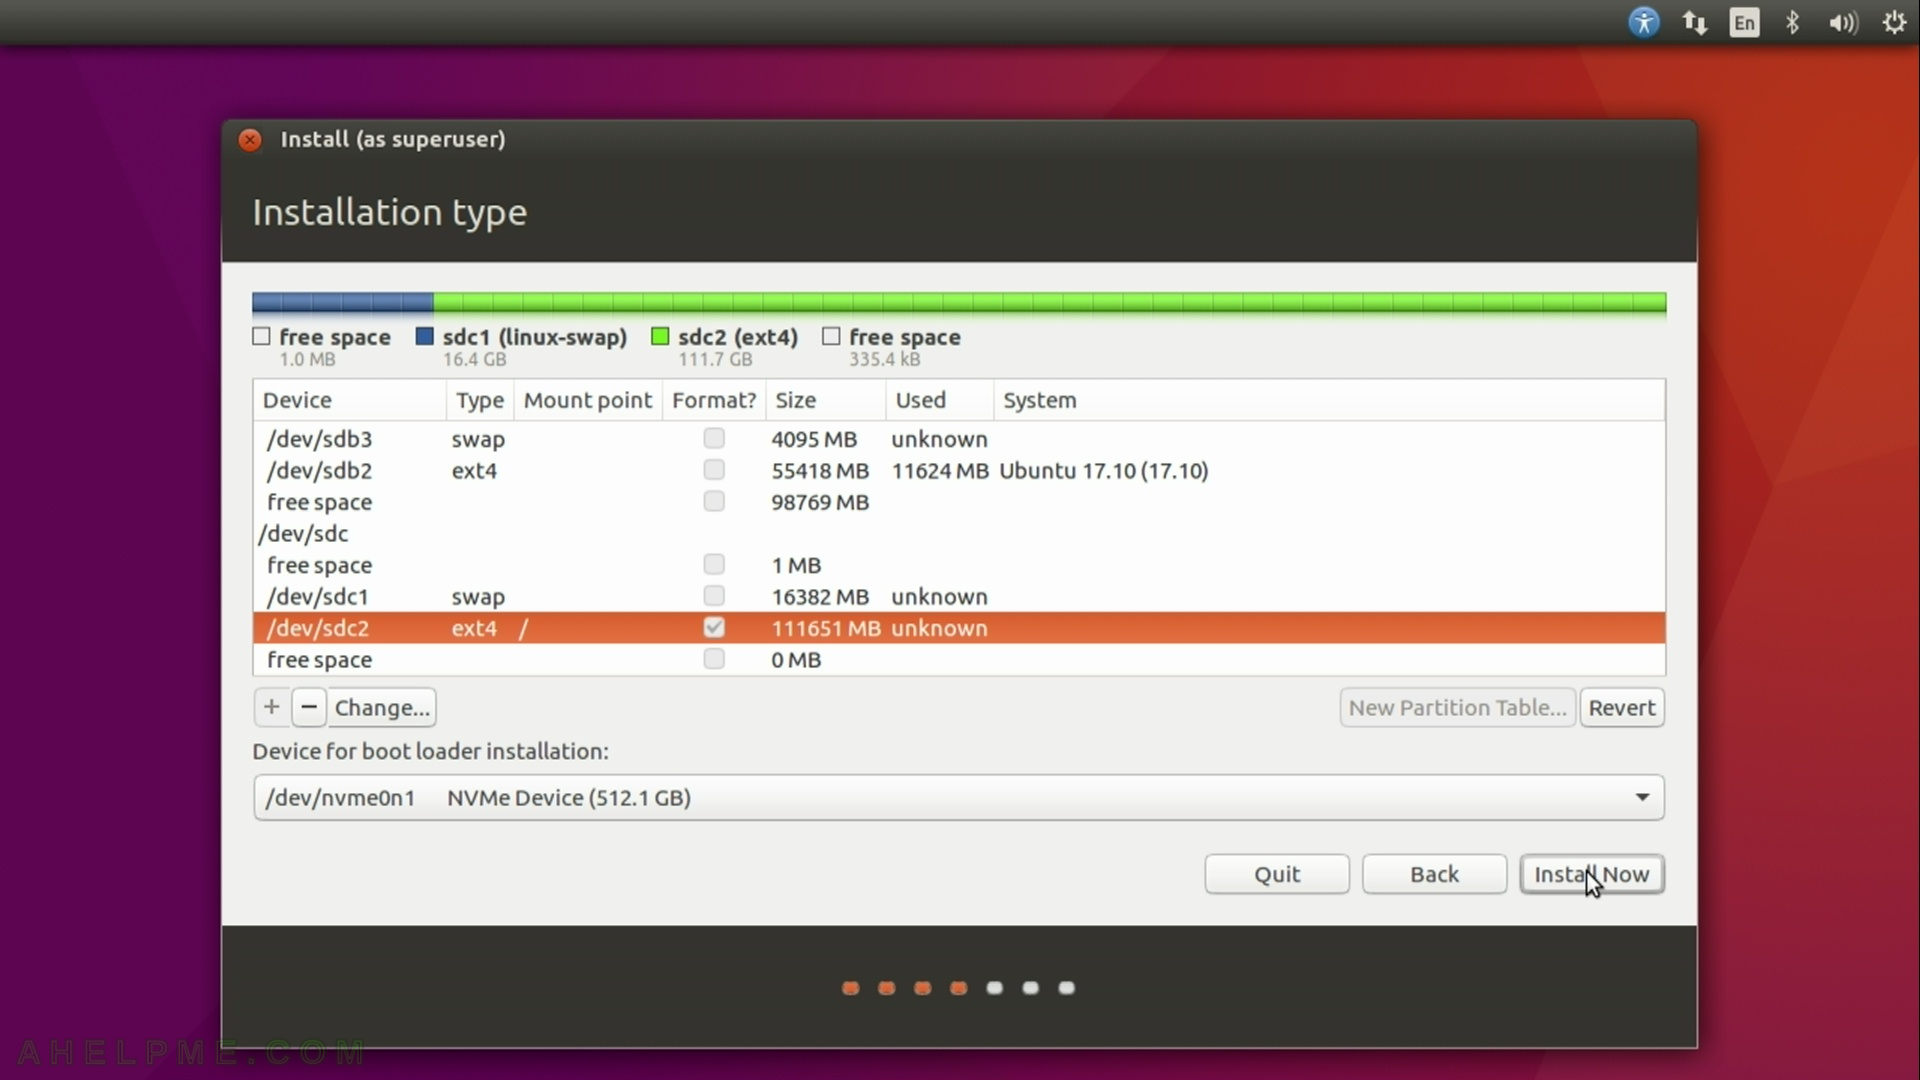 Install Ubuntu 16 04 LTS on a PC with existing windows 10